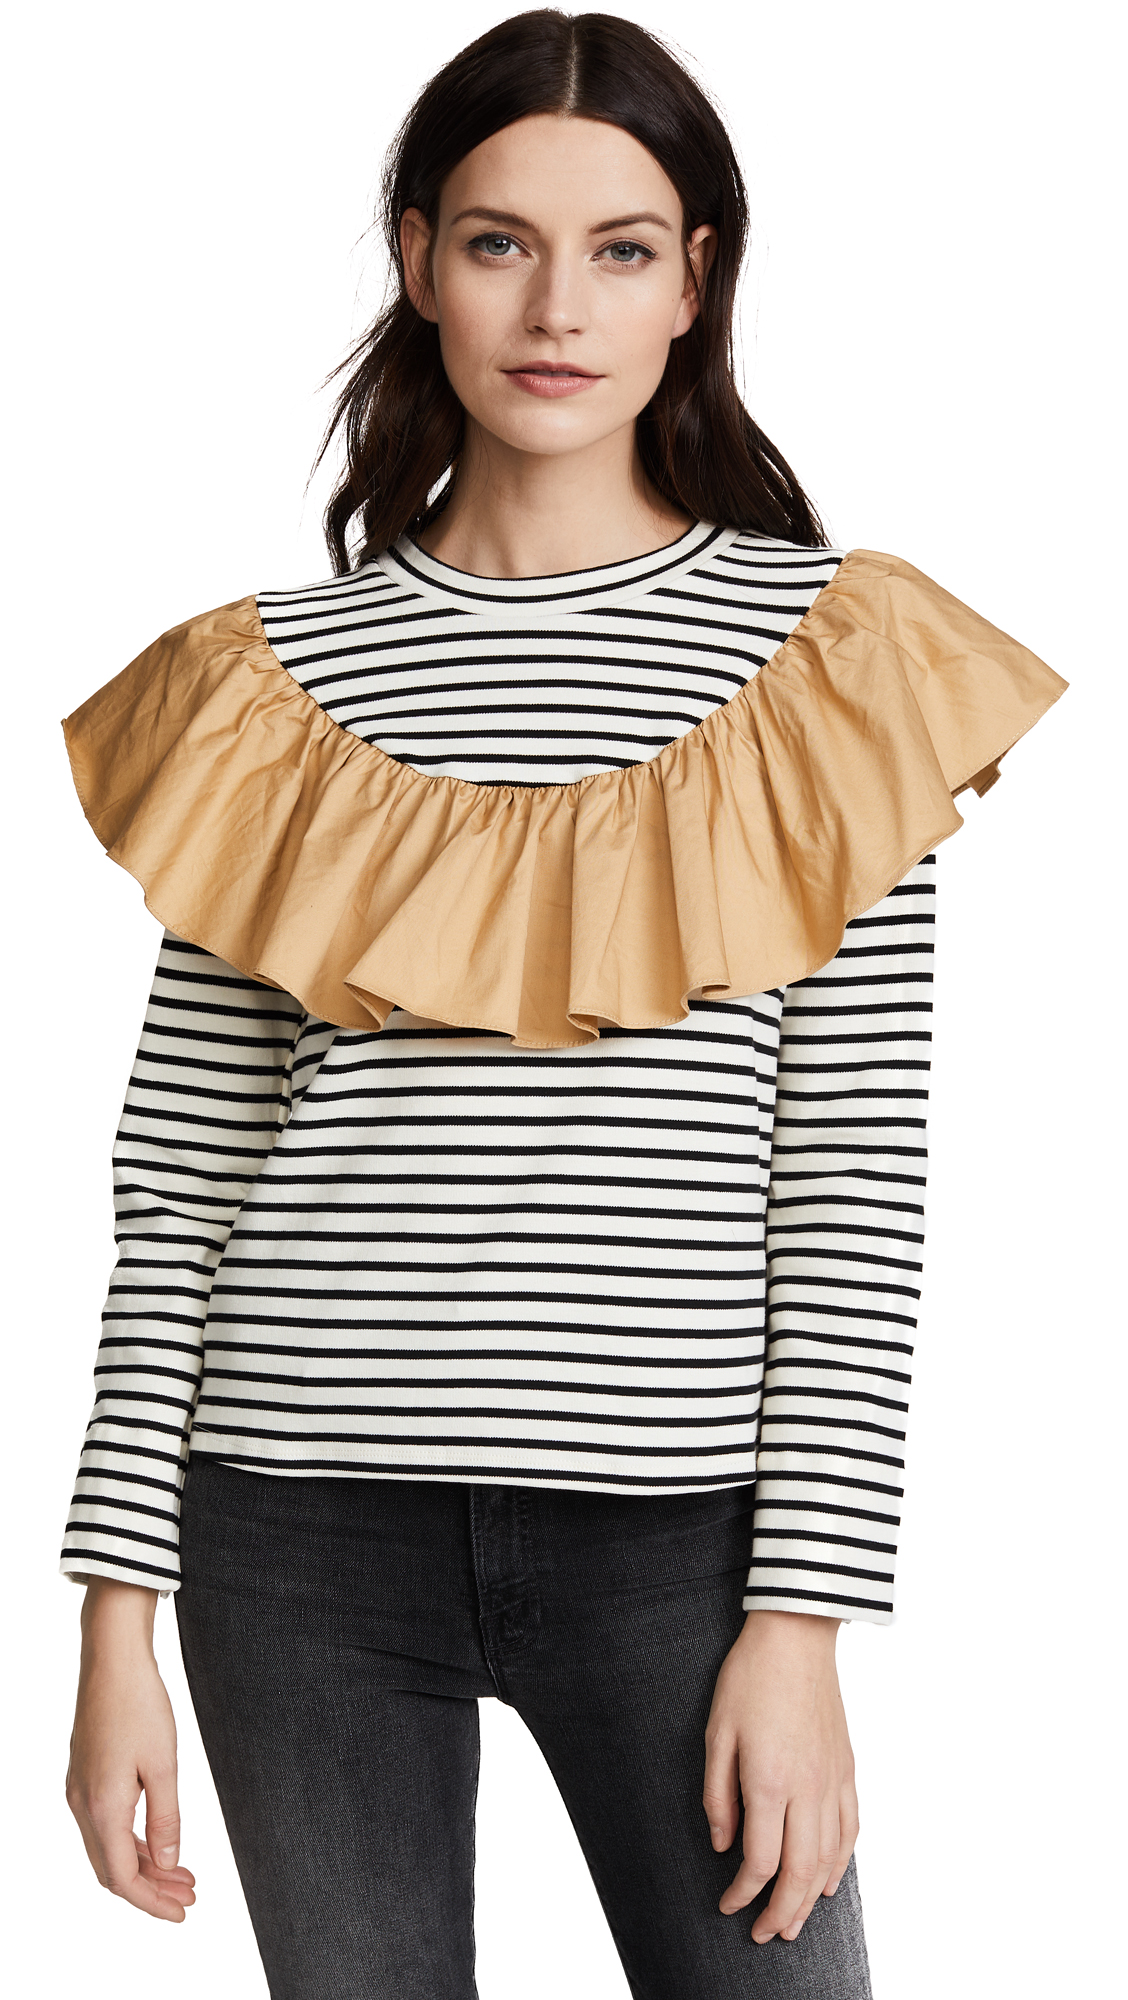 ENGLISH FACTORY Striped Top with Contrast Ruffle - Stripe/Dune